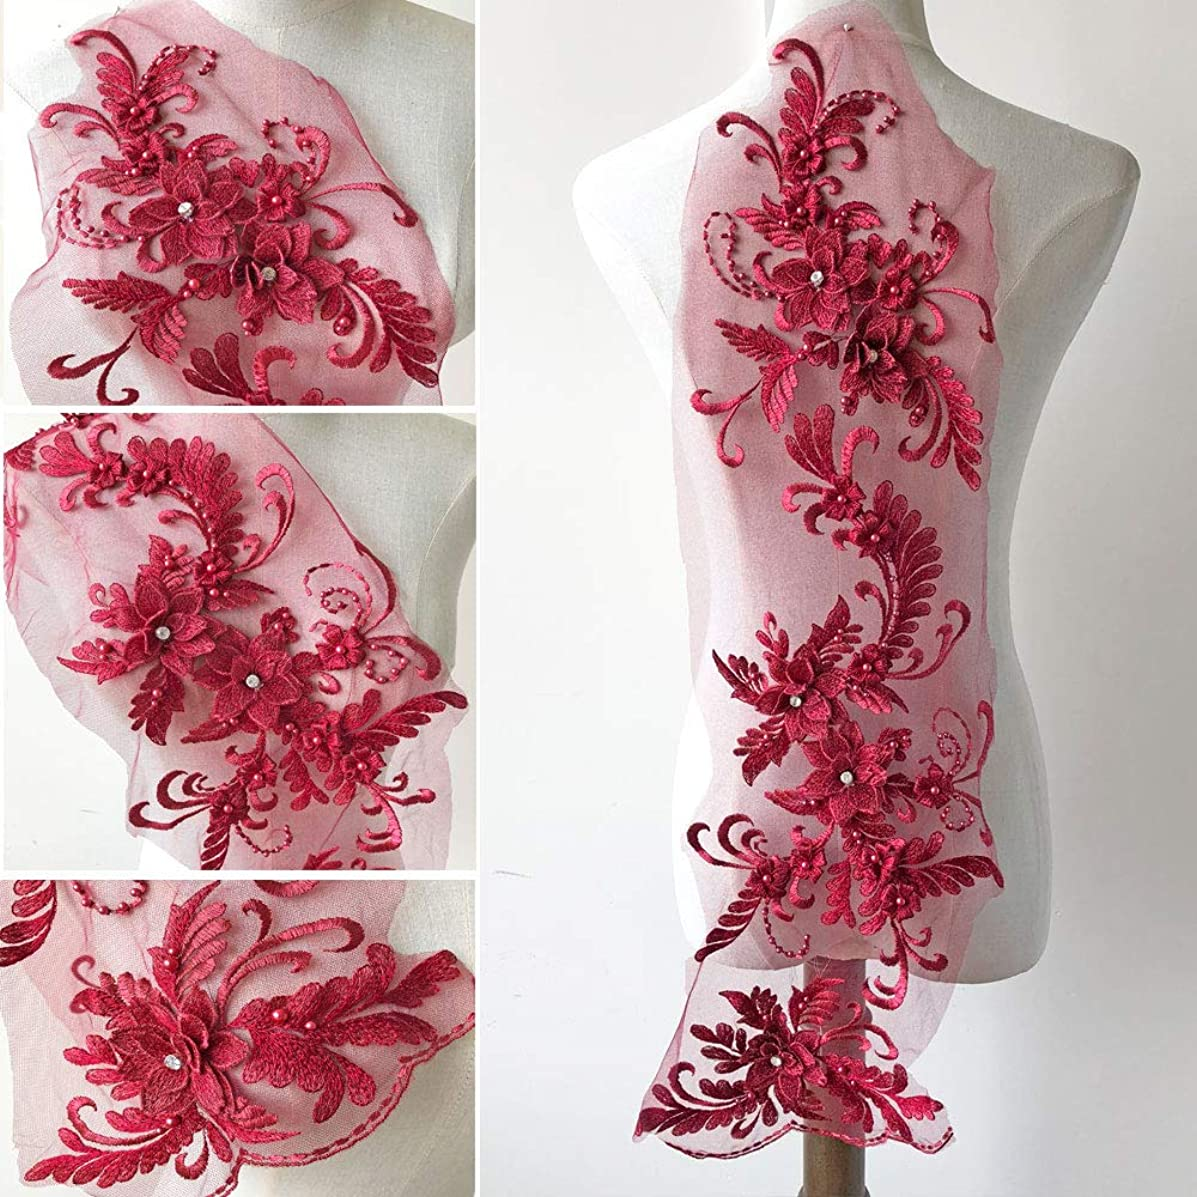 3D Beaded Flower Embroidery Lace Patch Applique Crystal Sewing Lace Motif for Dance Costumes Ballgown (Burgundy)